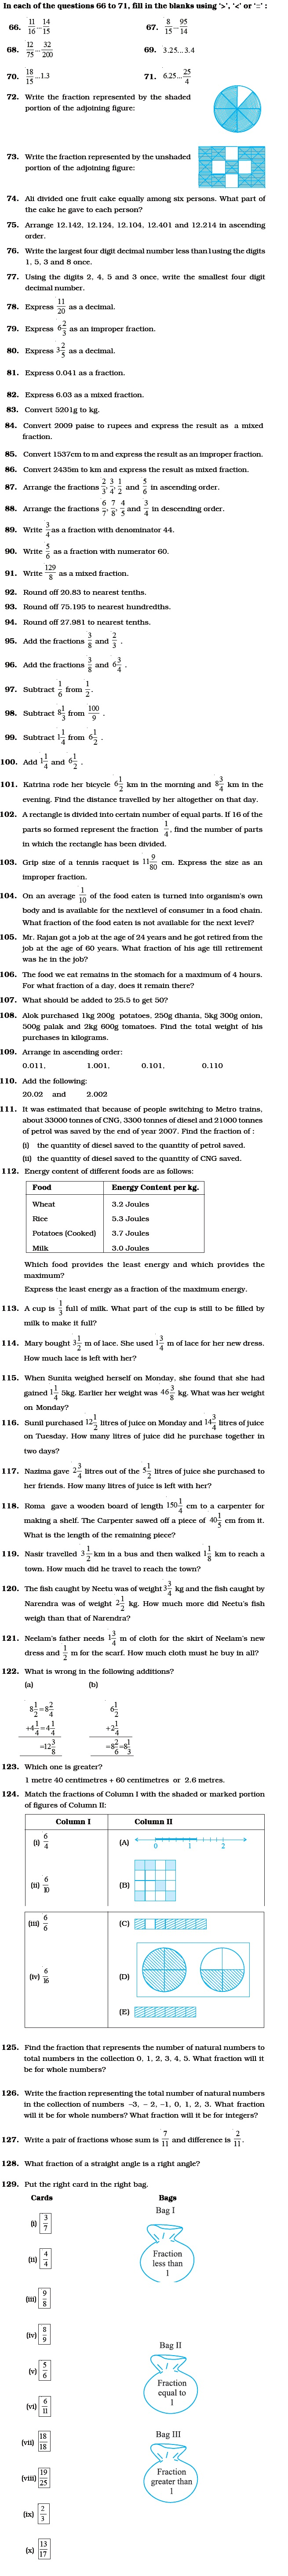 hight resolution of Class 6 Important Questions for Maths – Fractions and Decimals   AglaSem  Schools